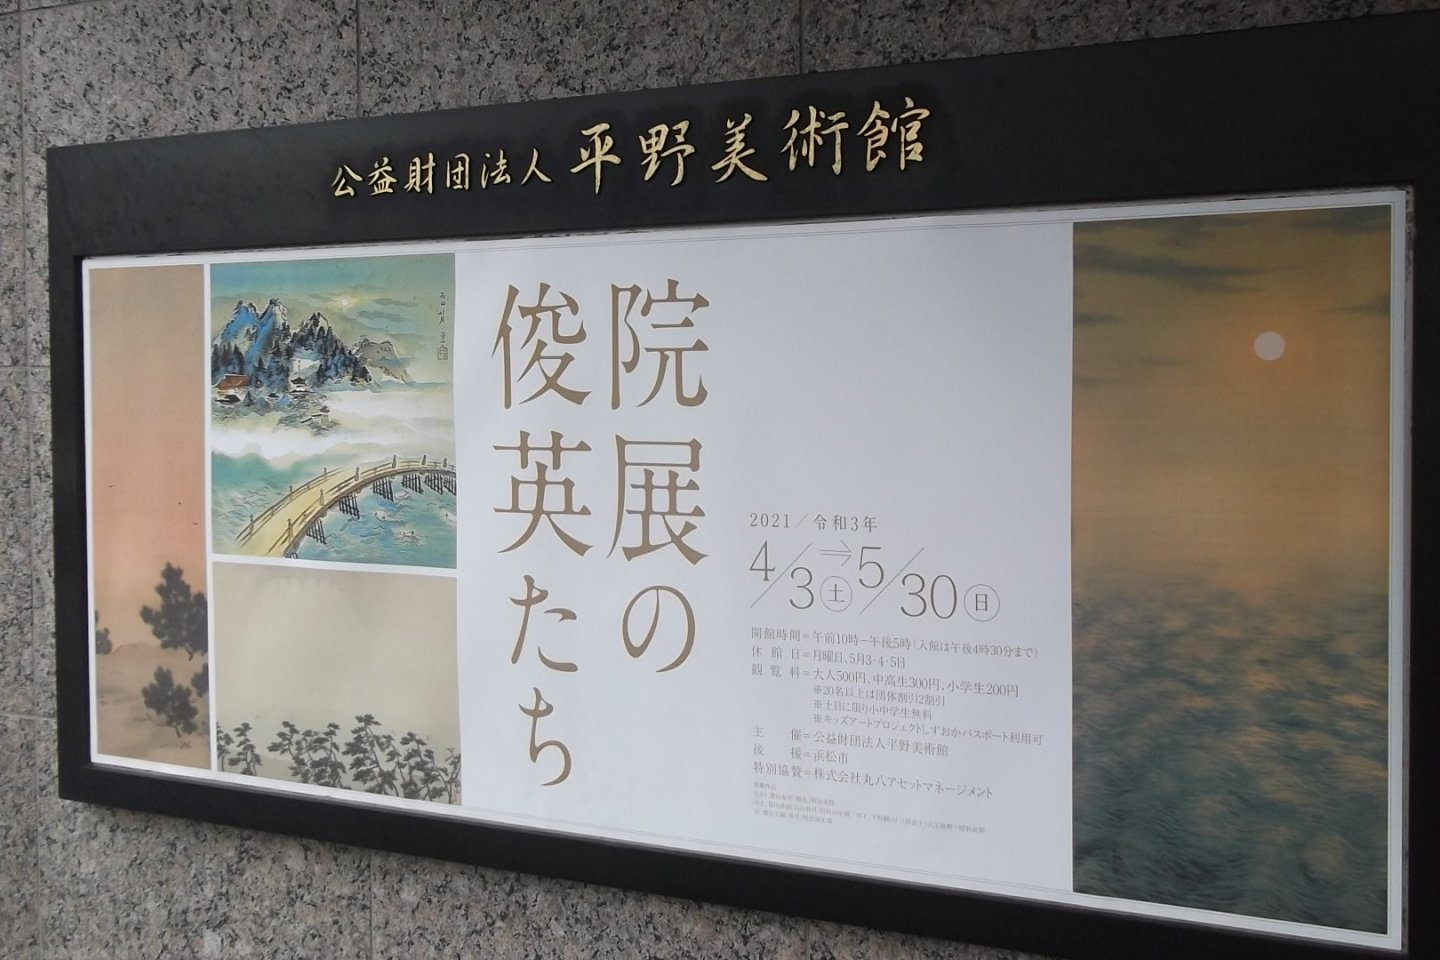 A poster for the current exhibition